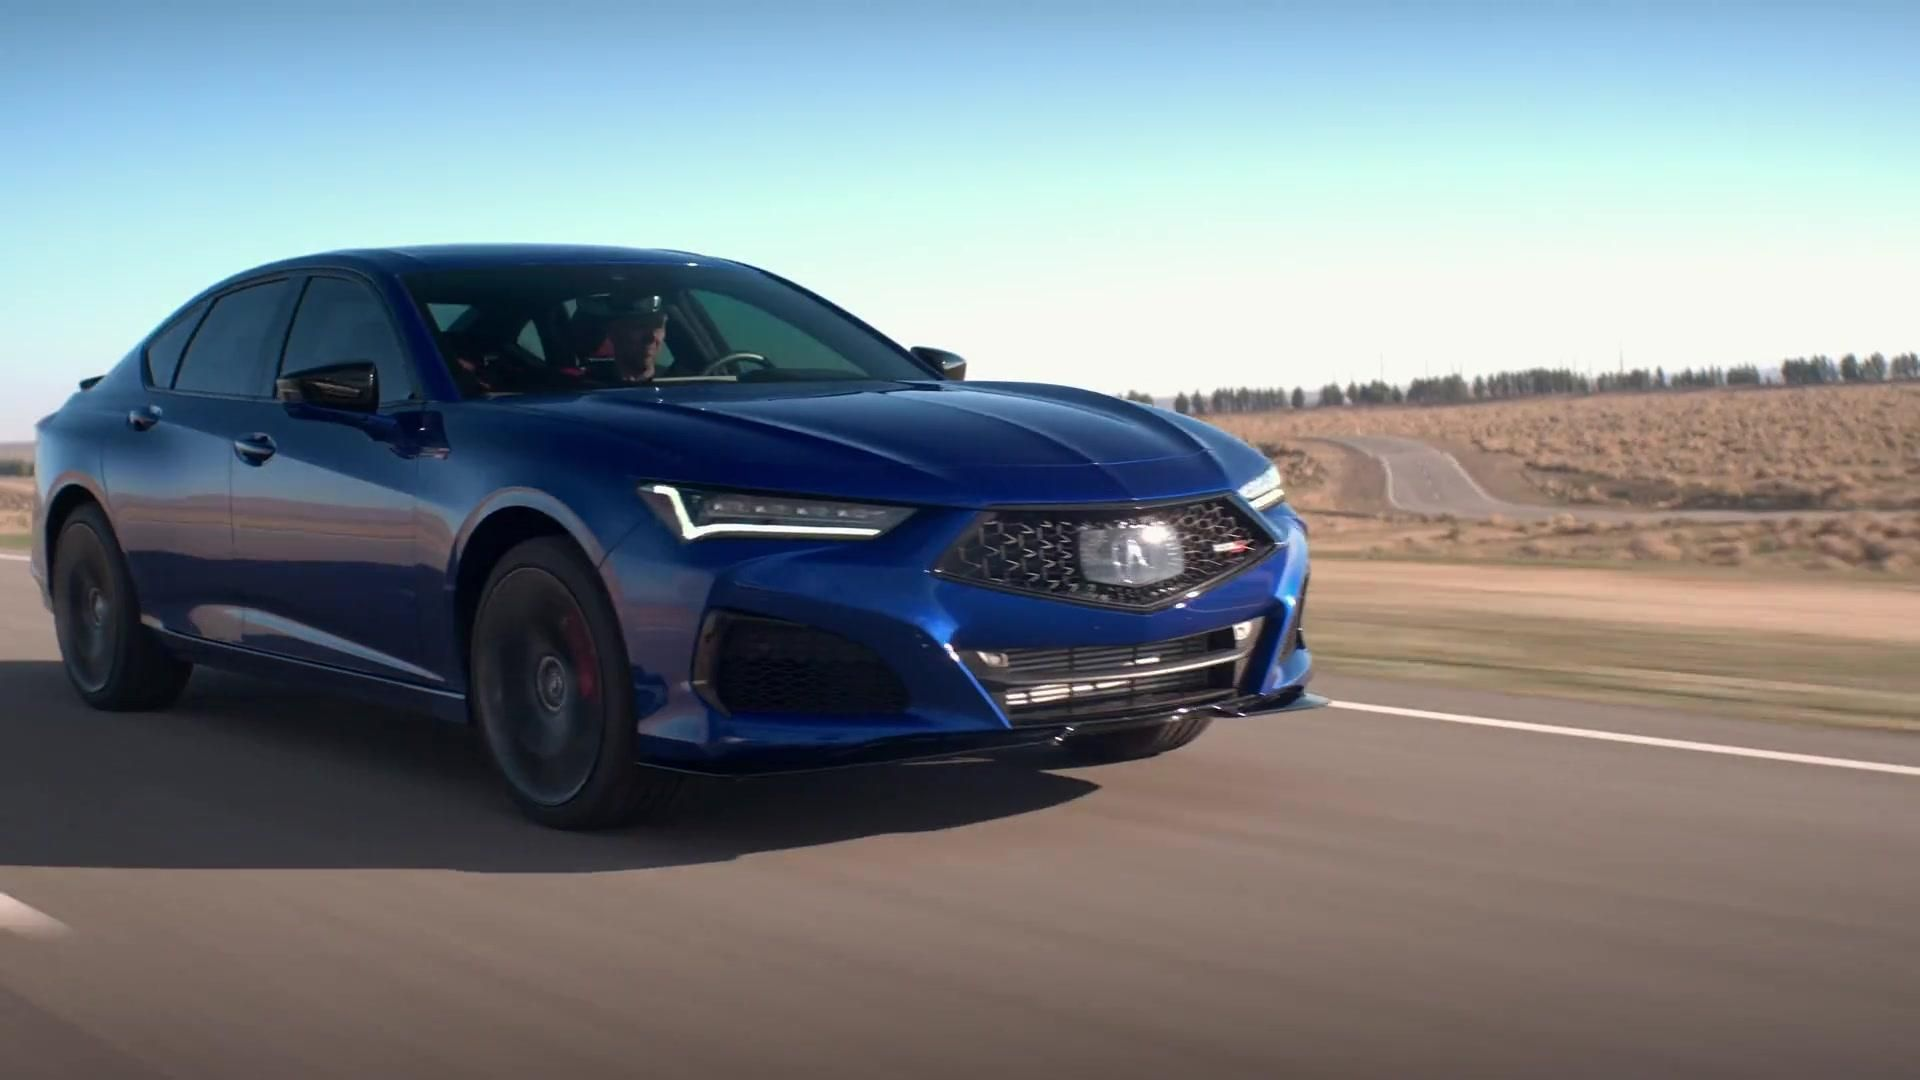 The All New 2021 Acura Tlx Type S Driving Video Acura Tlx Acura Nsx